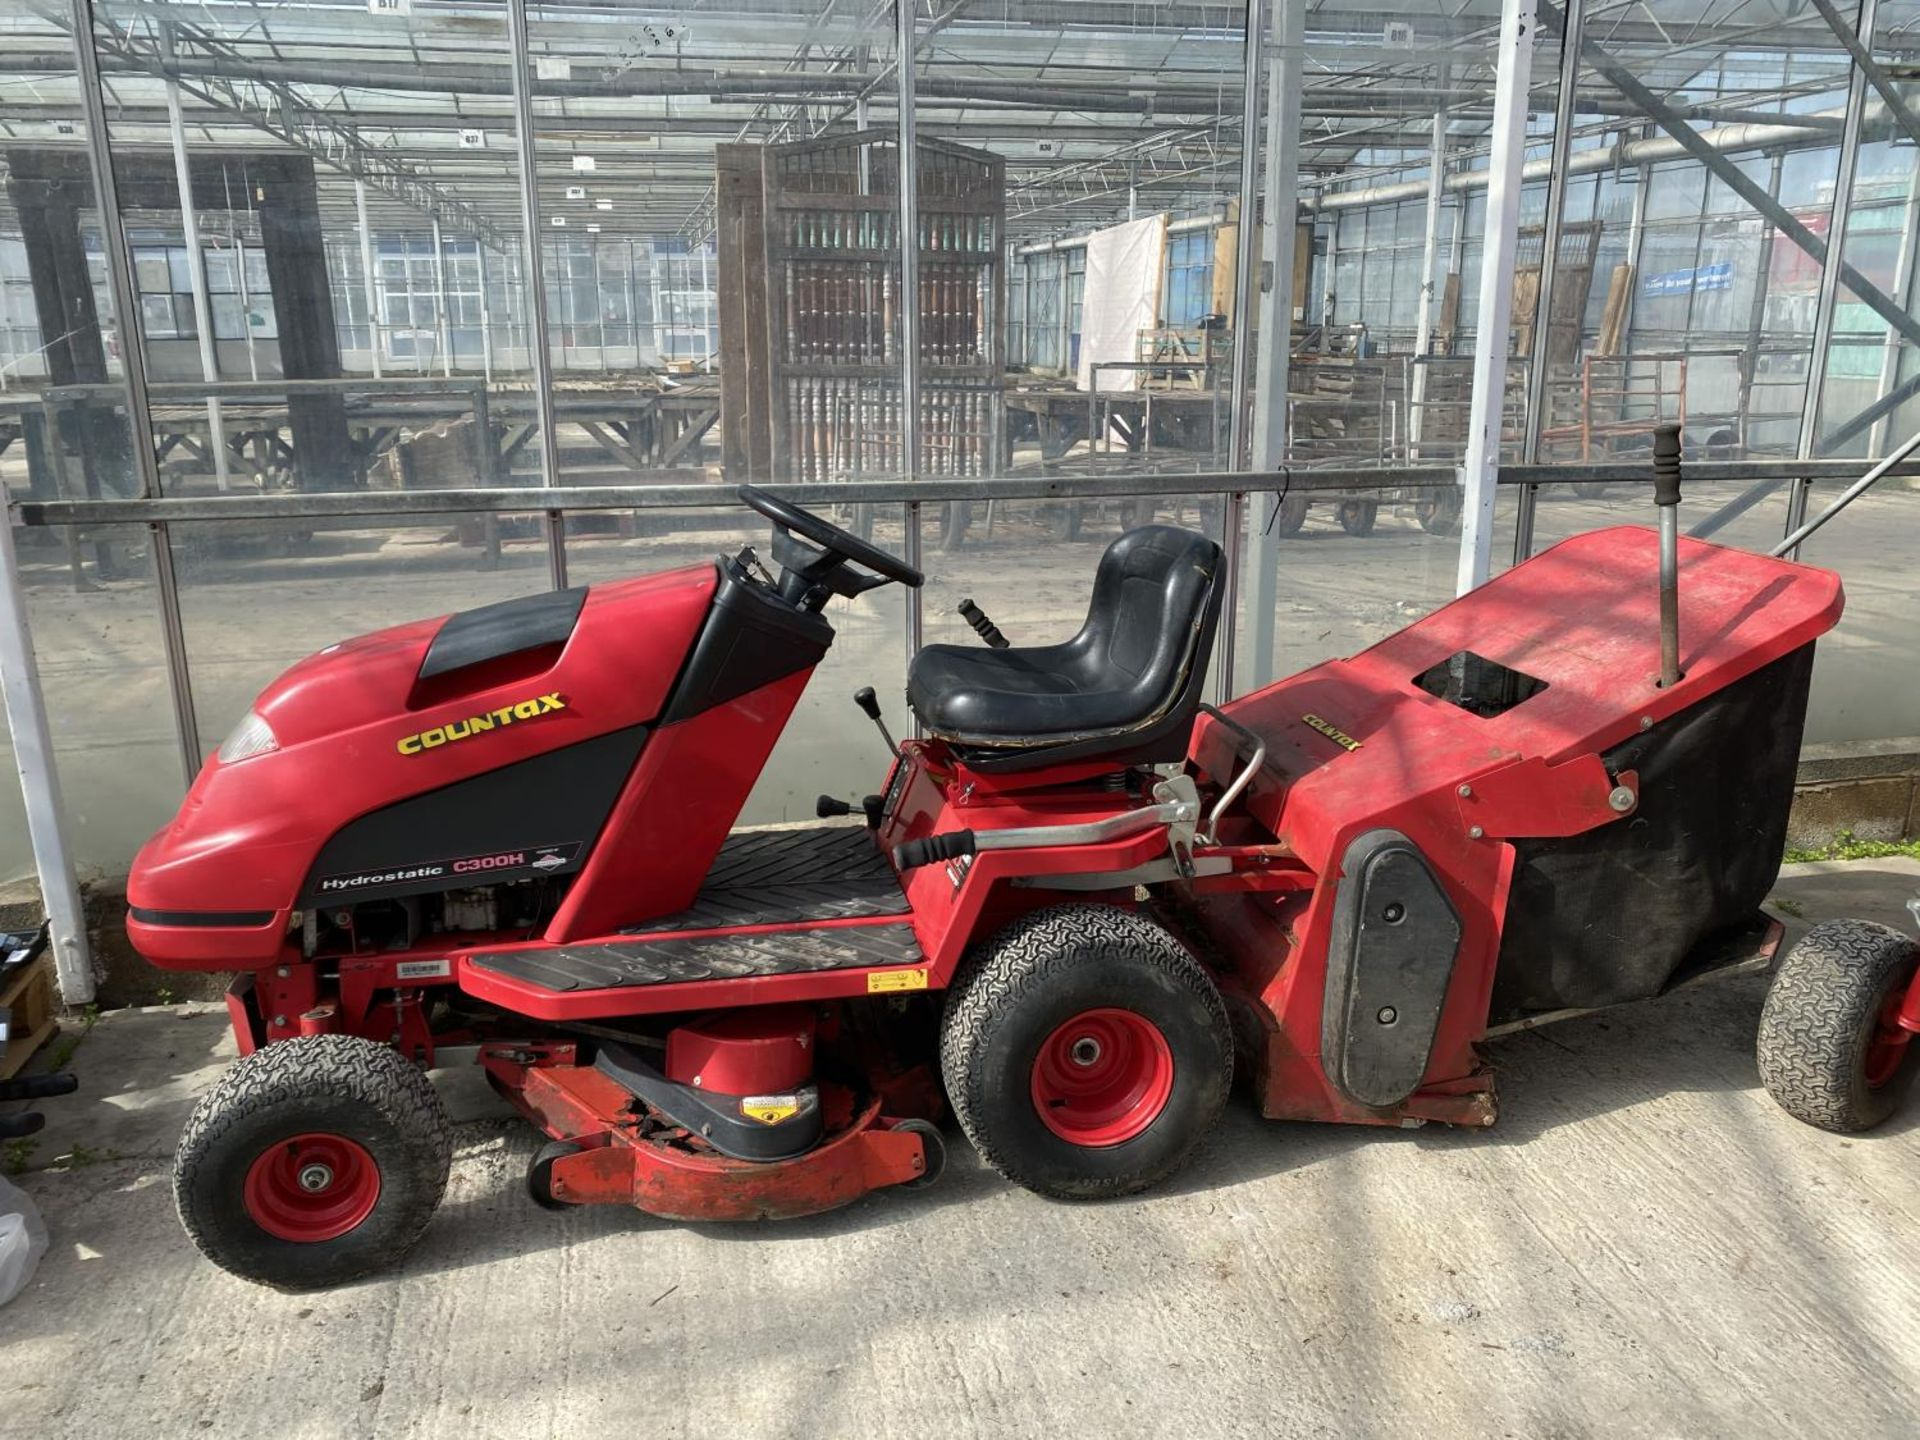 A COUNTAX HYDROSTATIC C300H RIDE ON MOWER, RUNNER - NO WARRANTY,(CUTTER NEEDS ATTENTION) NO VAT